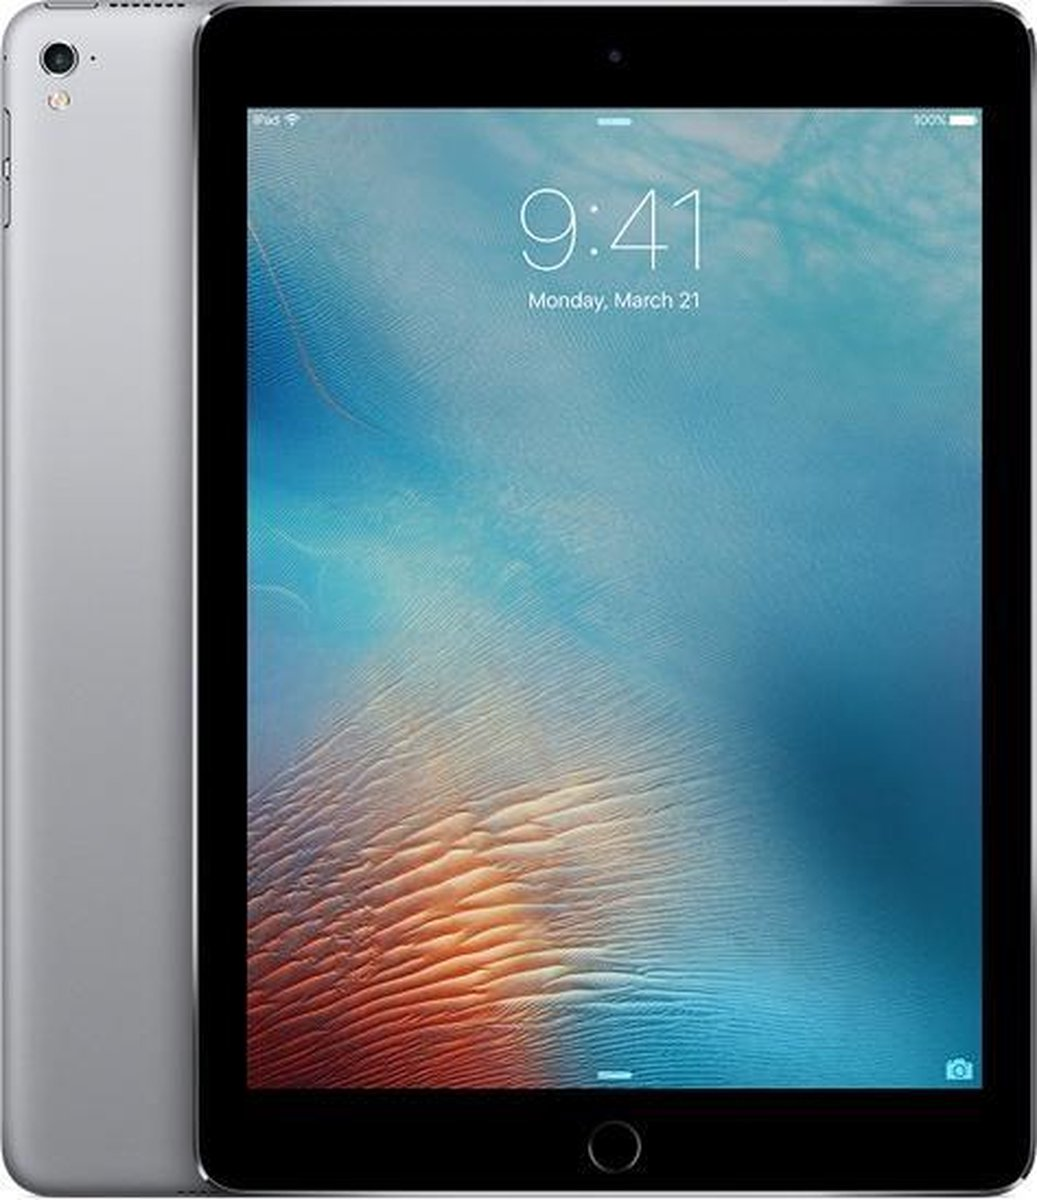 Apple iPad Pro - 9.7 inch - WiFi - 32GB - Spacegrijs